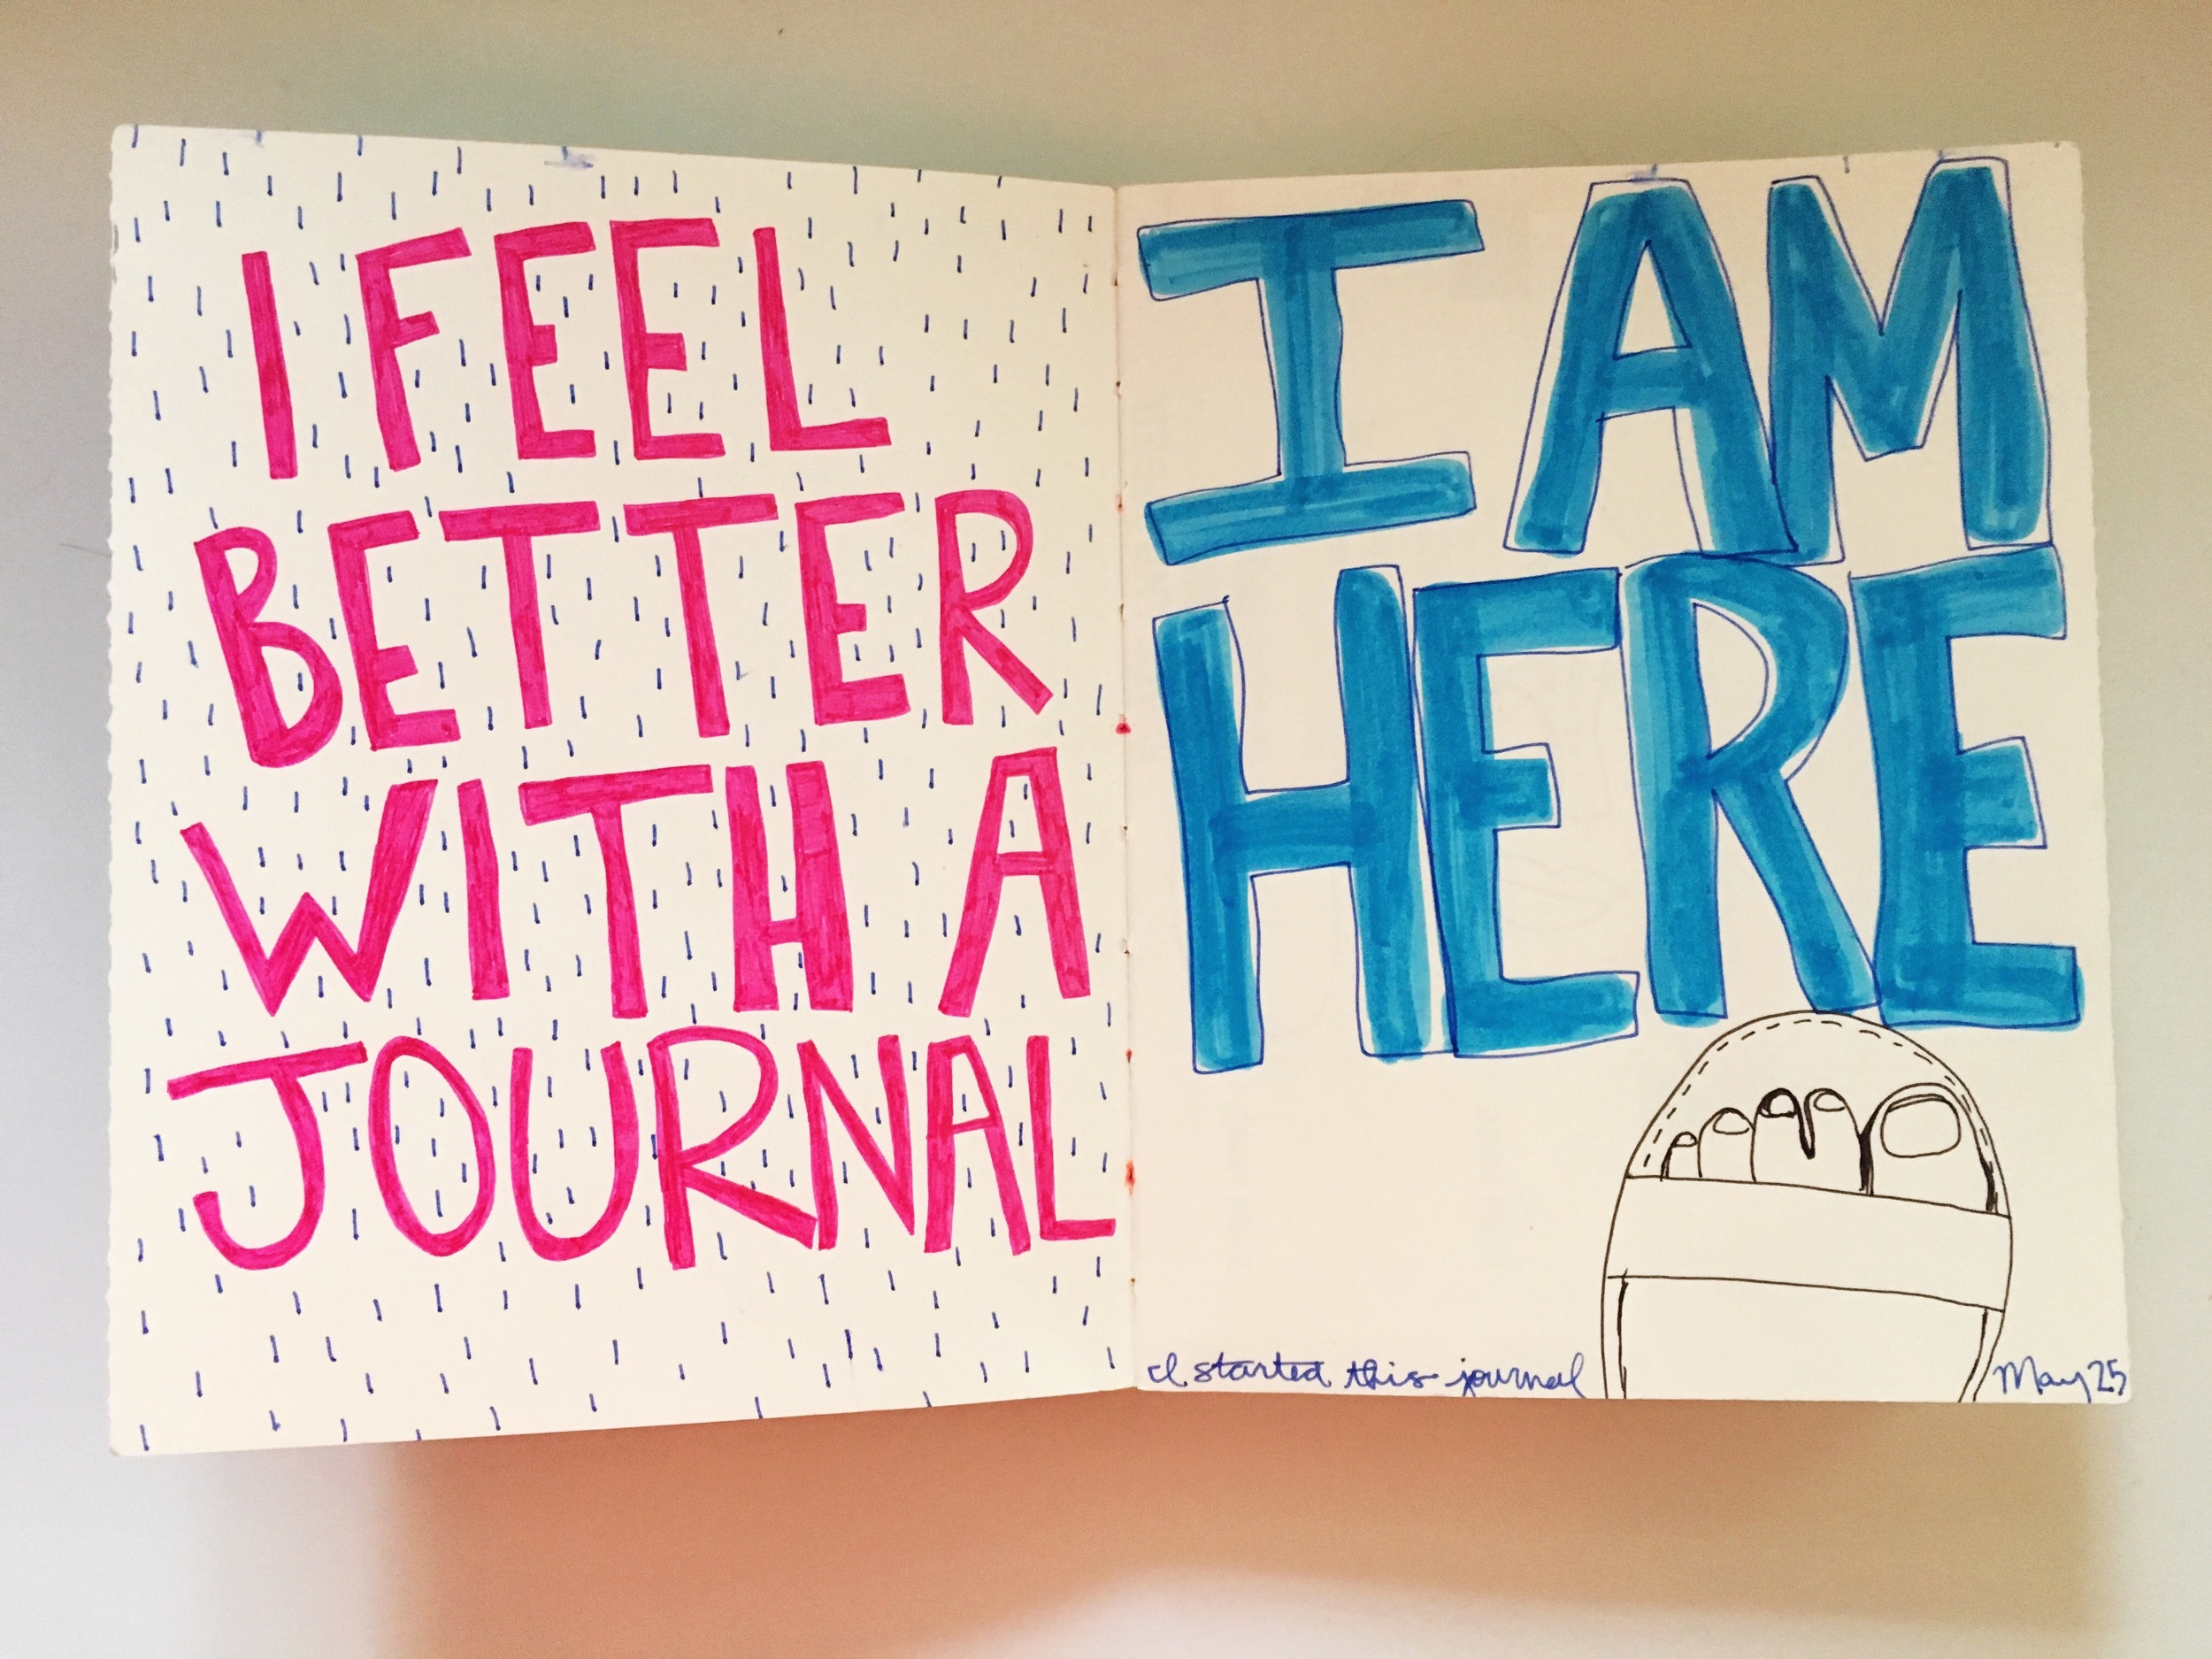 Feel better with an art journal